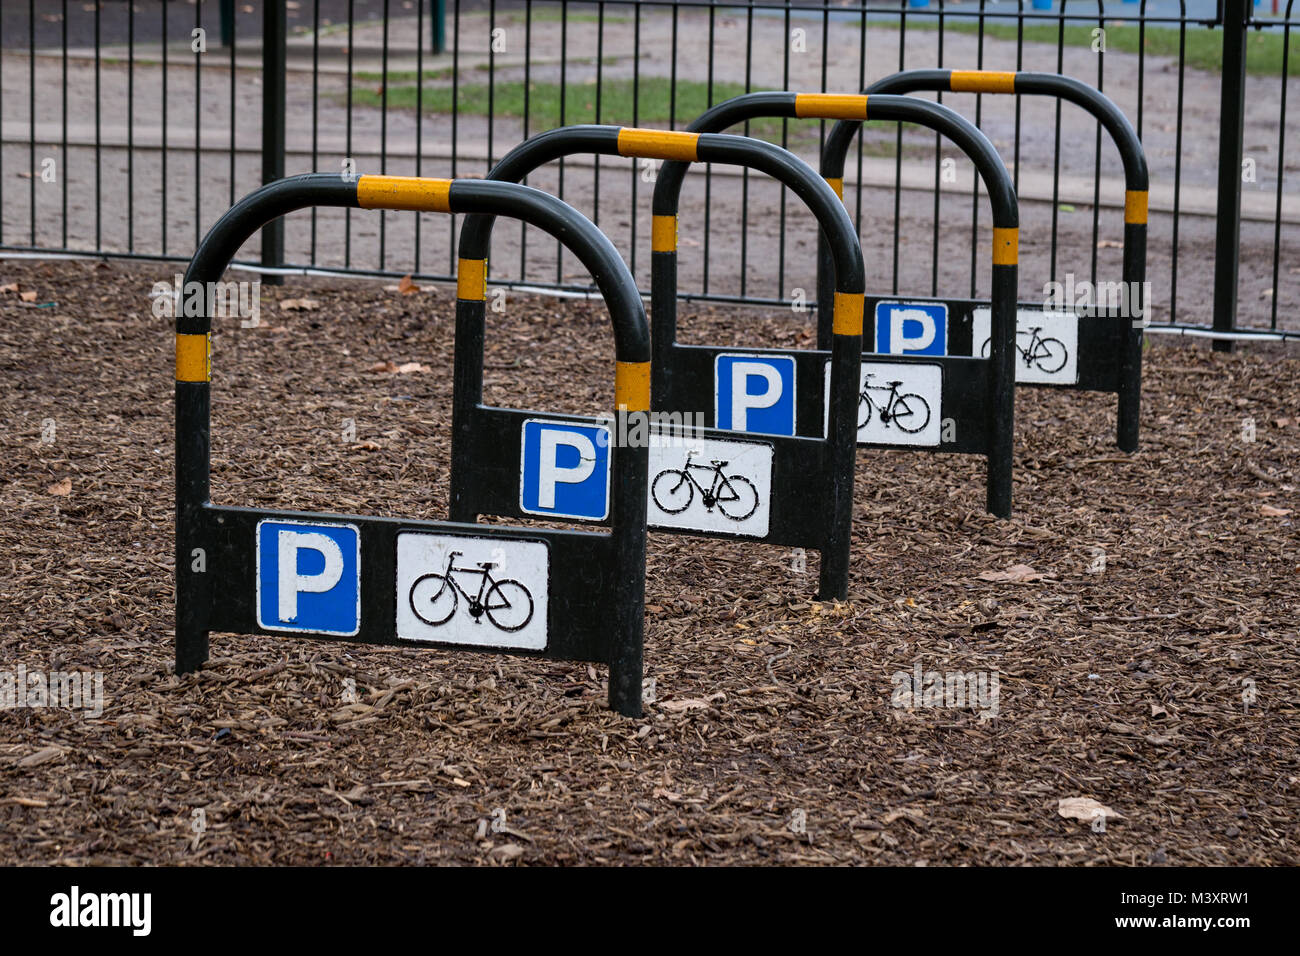 An empty bicycle parking rack in Battersea Park, London, England - Stock Image